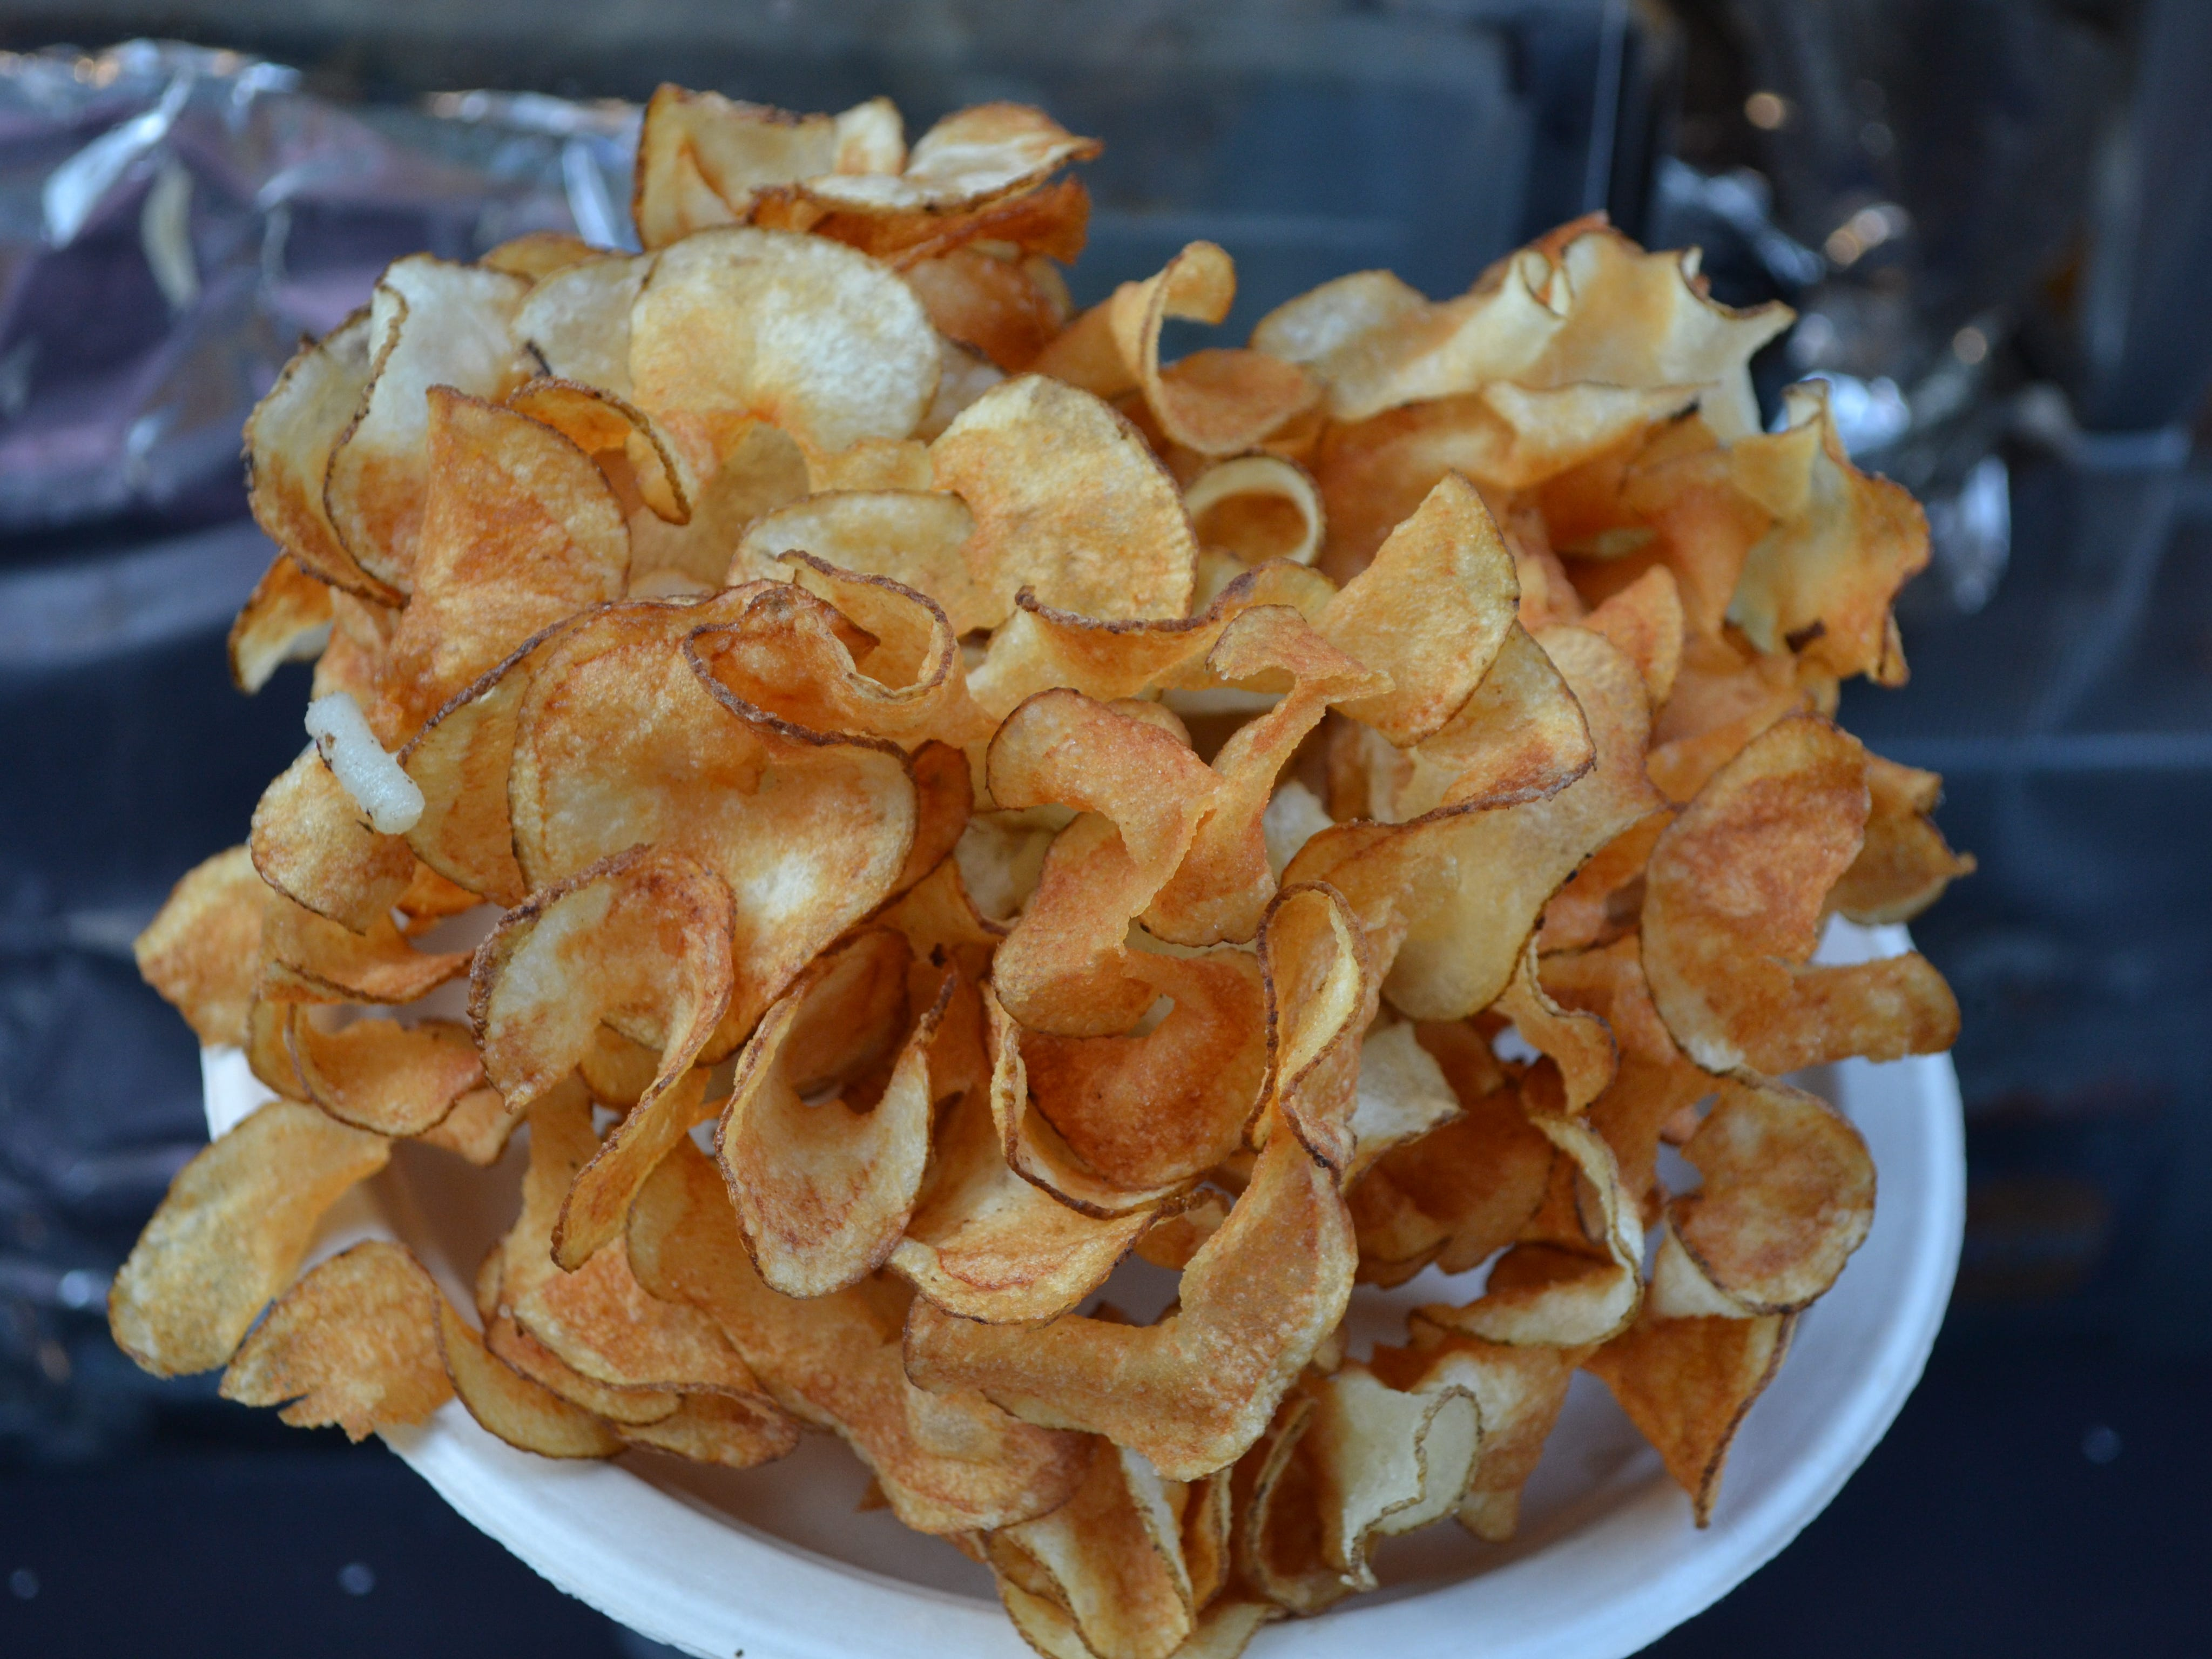 La Milpa on Main Street near the City Stage is offering homemade potato chips at the National Folk Festival in Salisbury.